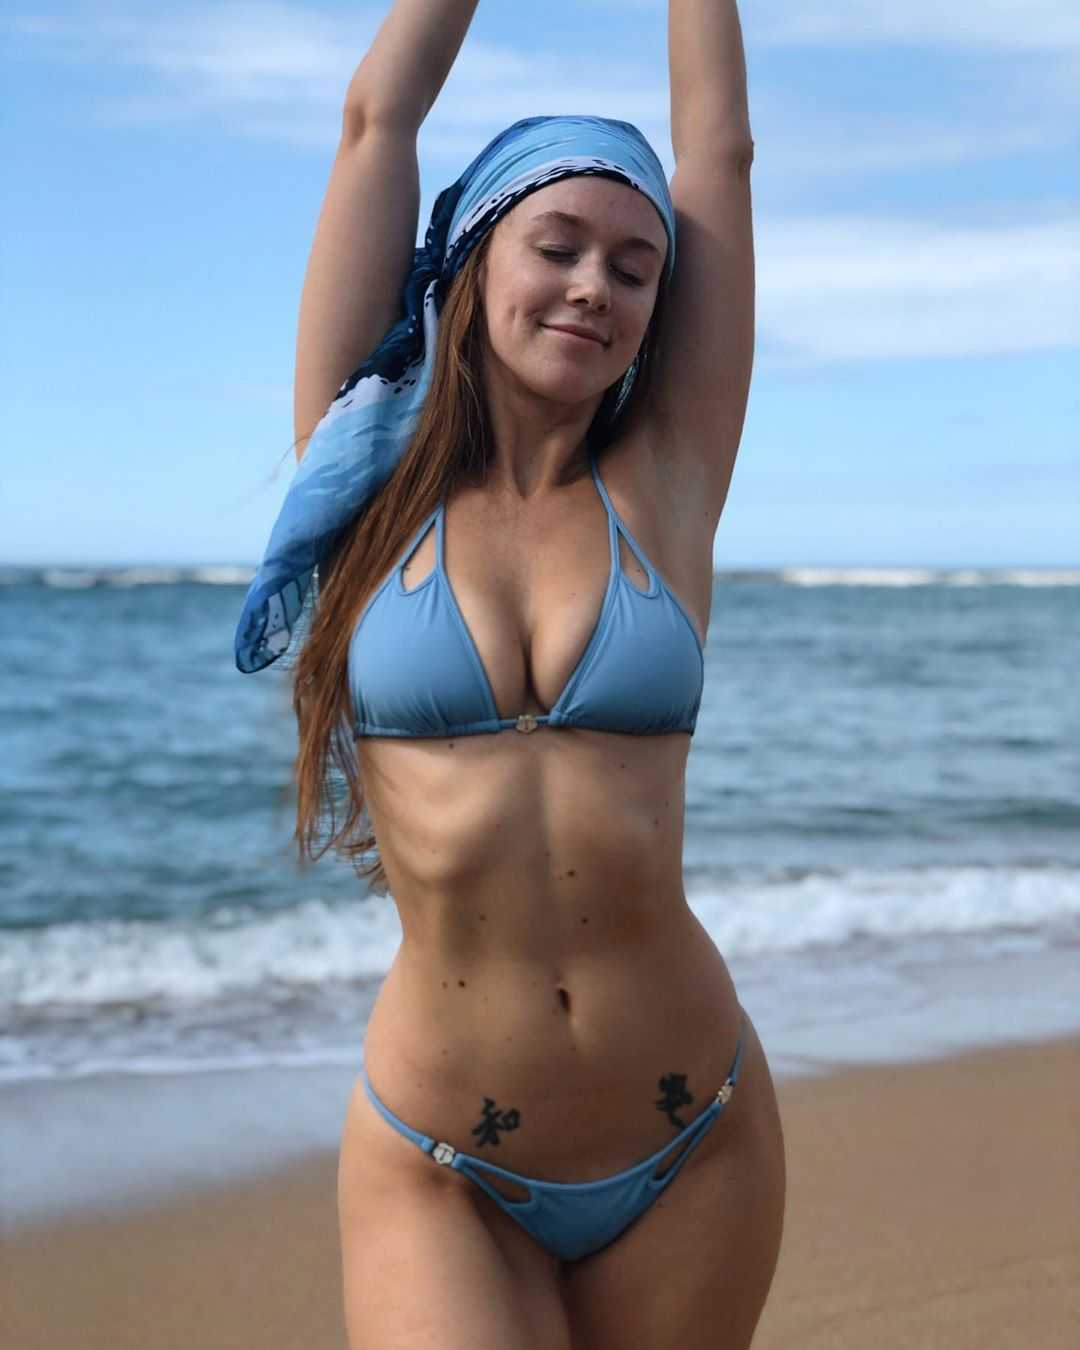 70+ Hot Pictures Of Leanna Decker Which Will Get You